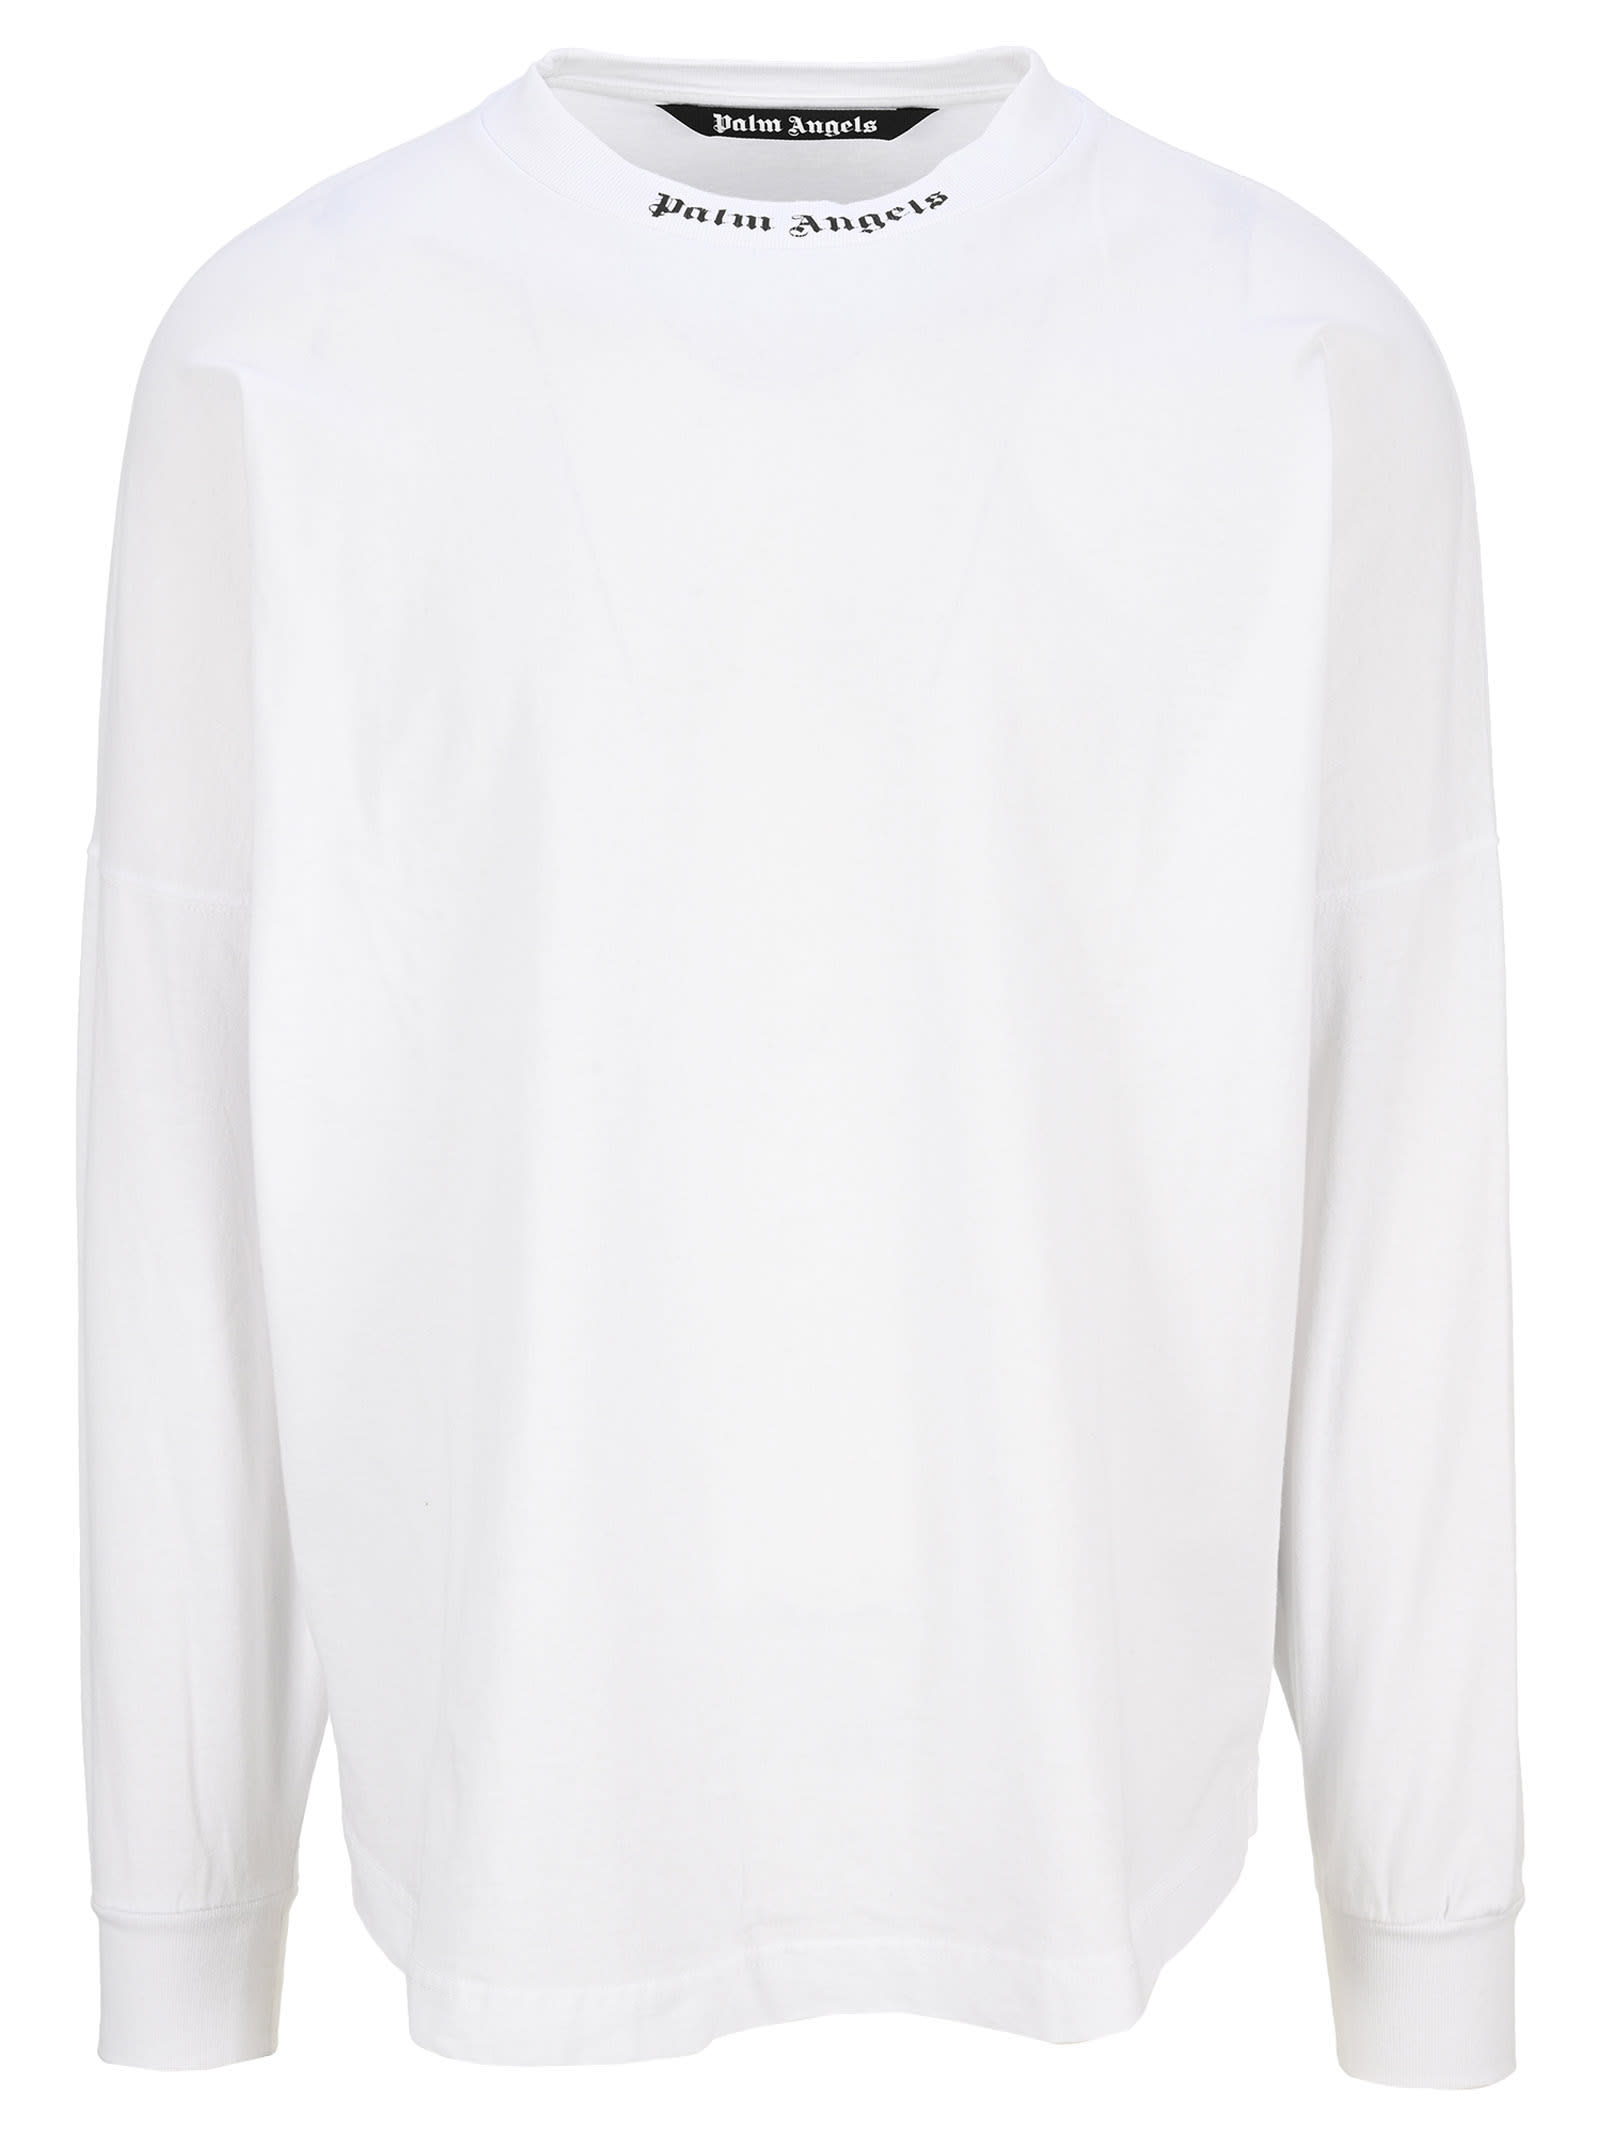 Palm Angels Doubled Logo Long-sleeve T-shirt